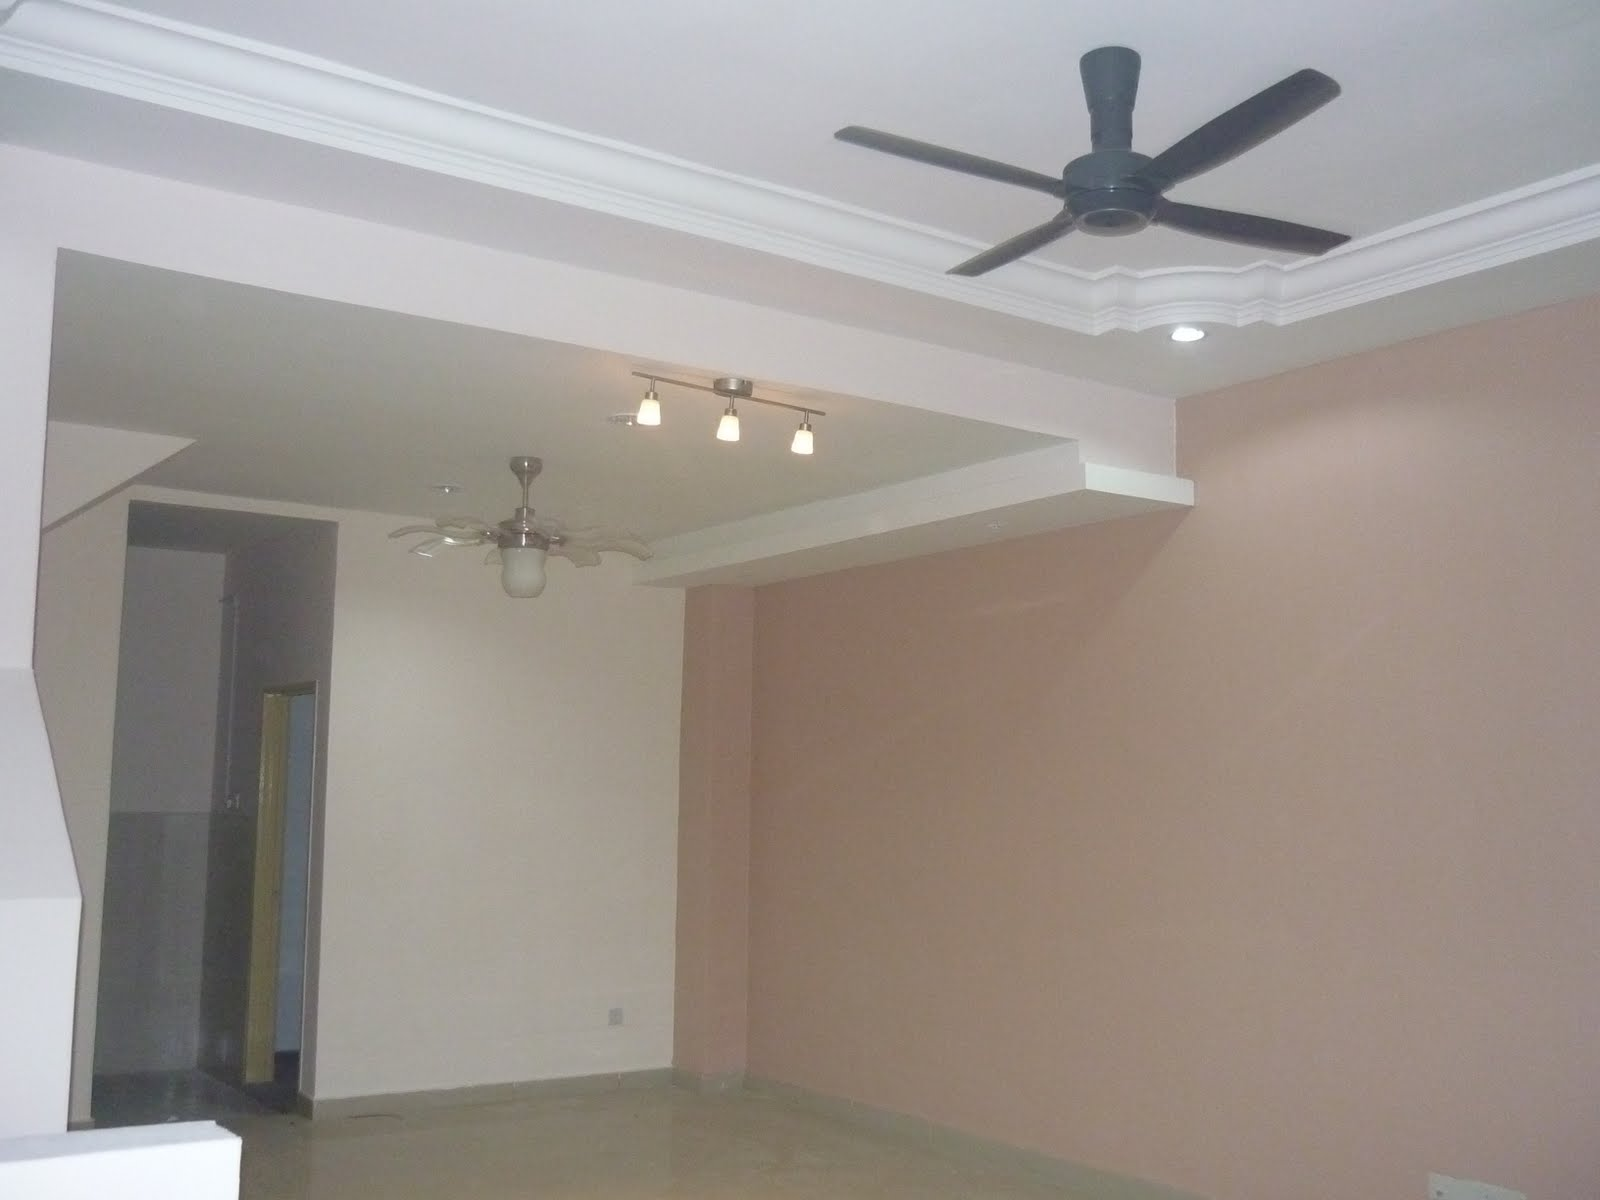 INDAH CAHAYA ENTERPRISE Renovation Plaster Ceiling